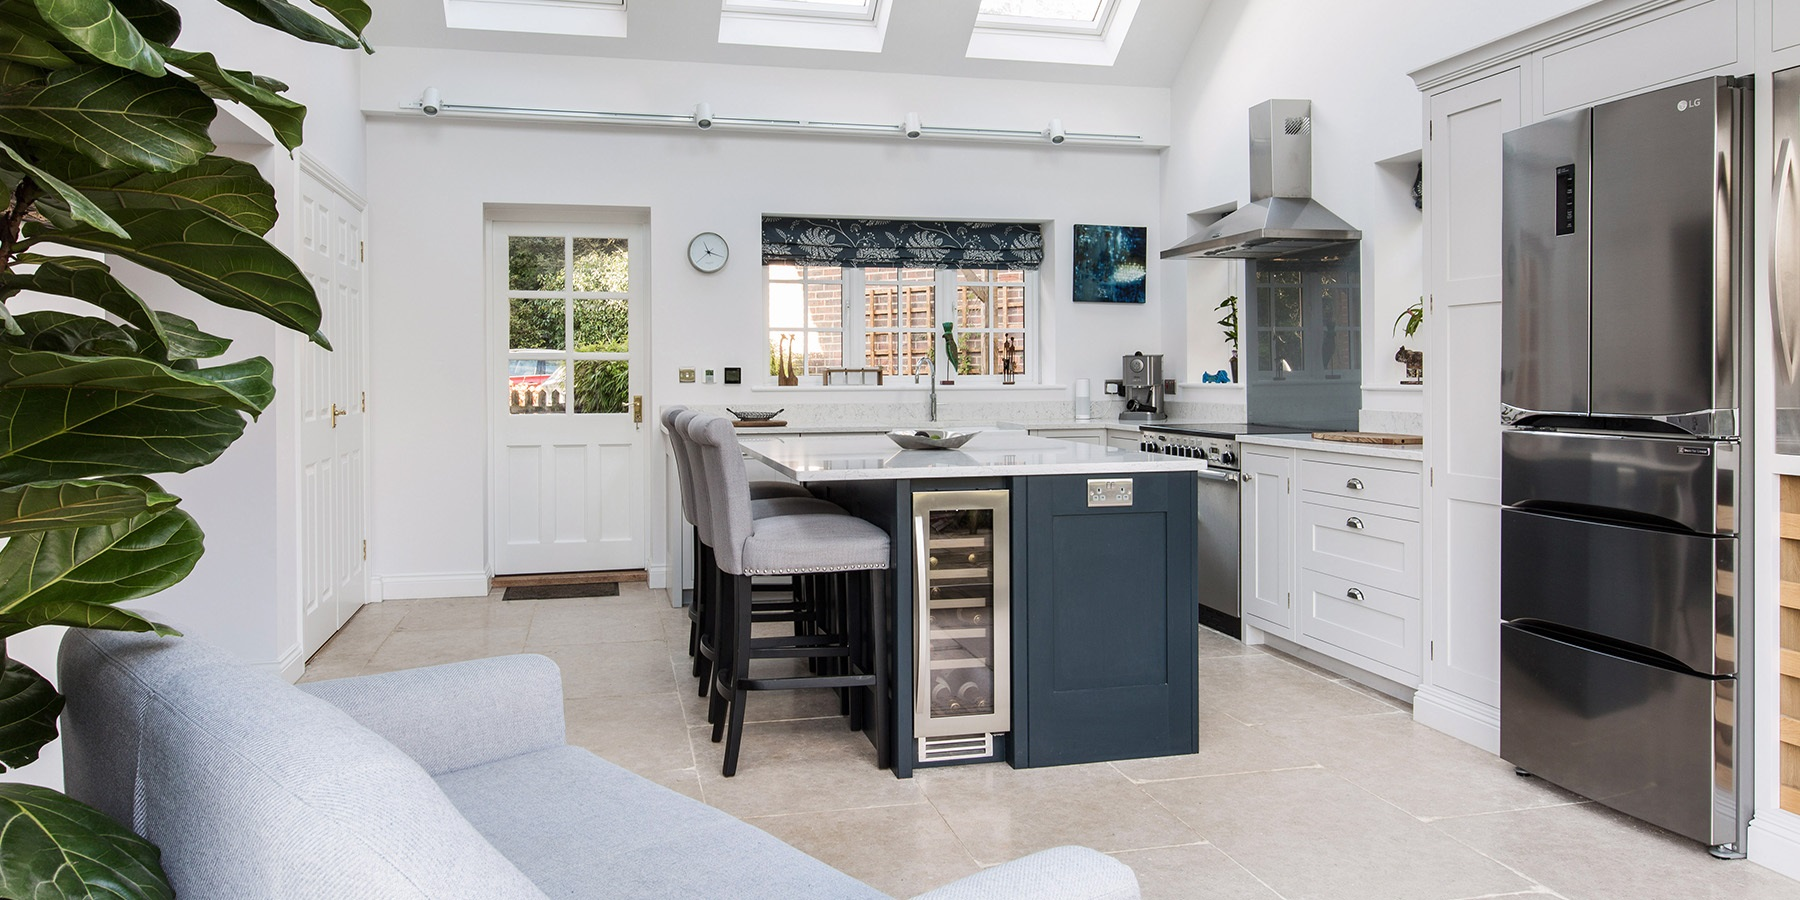 Burlanes Contemporary Shaker Kitchen - Handmade Hoyden kitchen perfect for entertaining, with central island and breakfast bar.